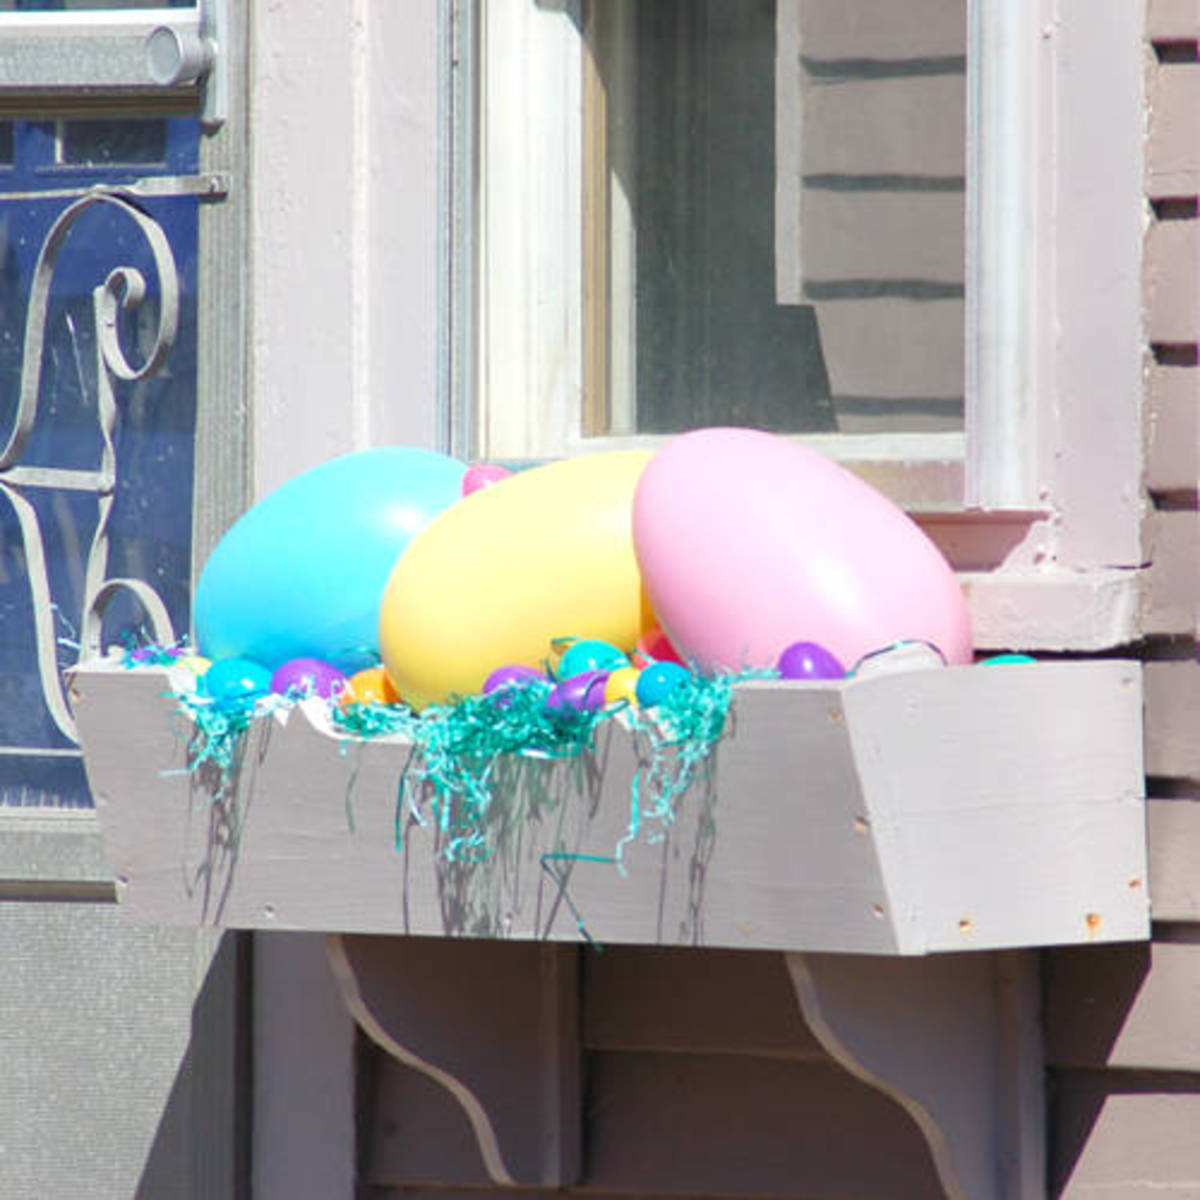 Easter Eggs of Turquoise Blue Yellow and Pink in a Window Box